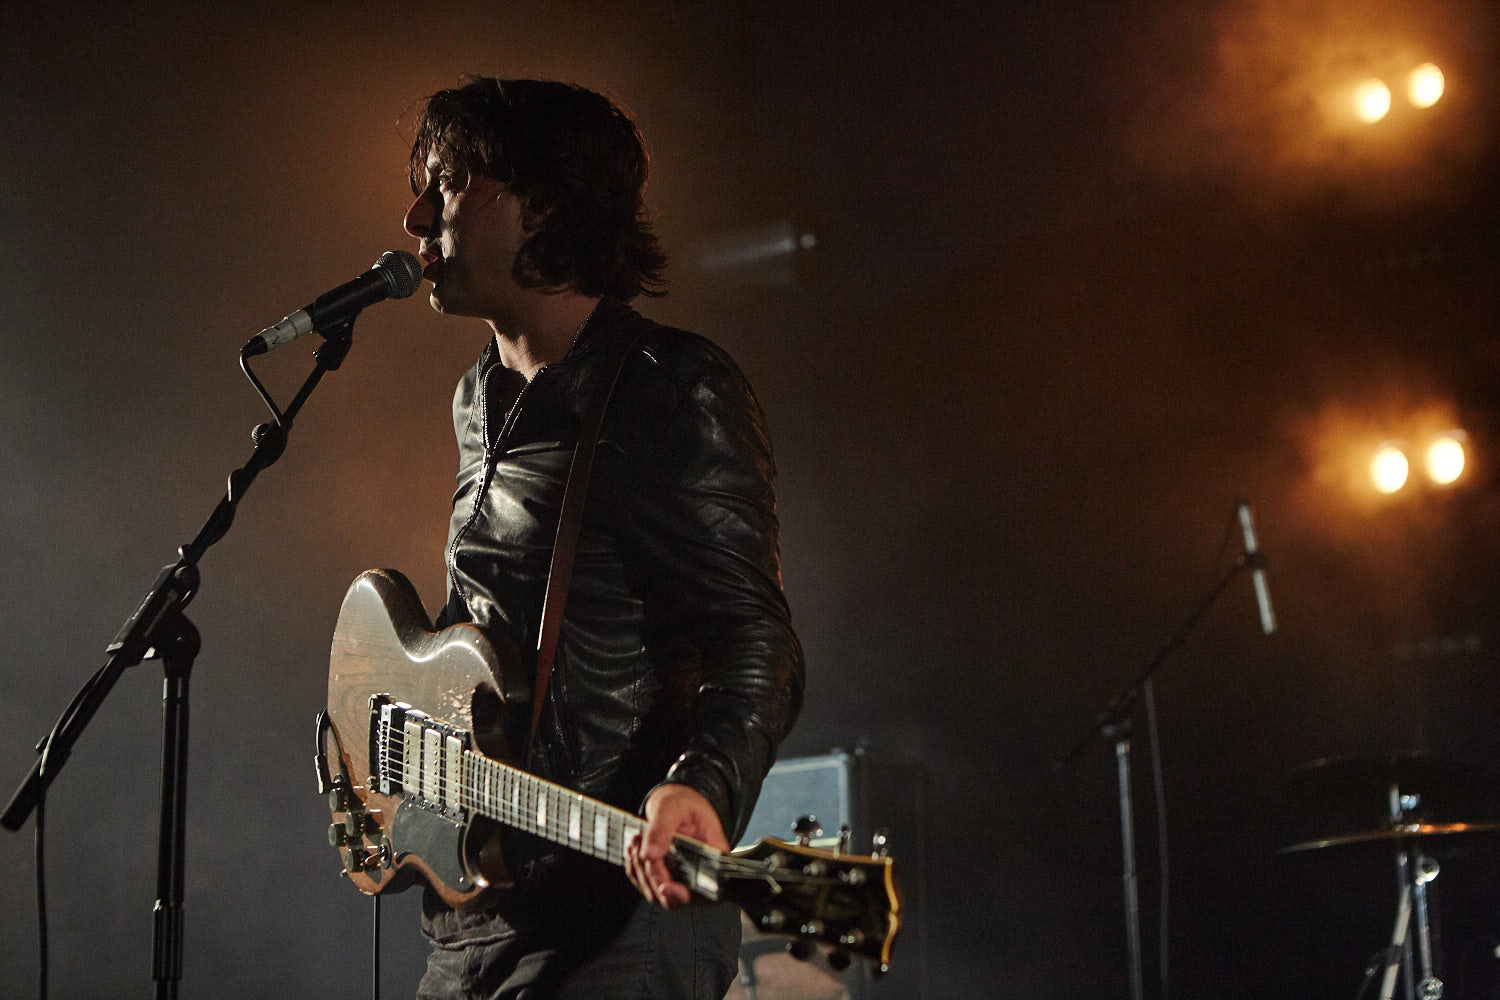 Carl Barat & The Jackals performing on the first day of Boardmasters music festival, Watergate Bay, Cornwall 2015